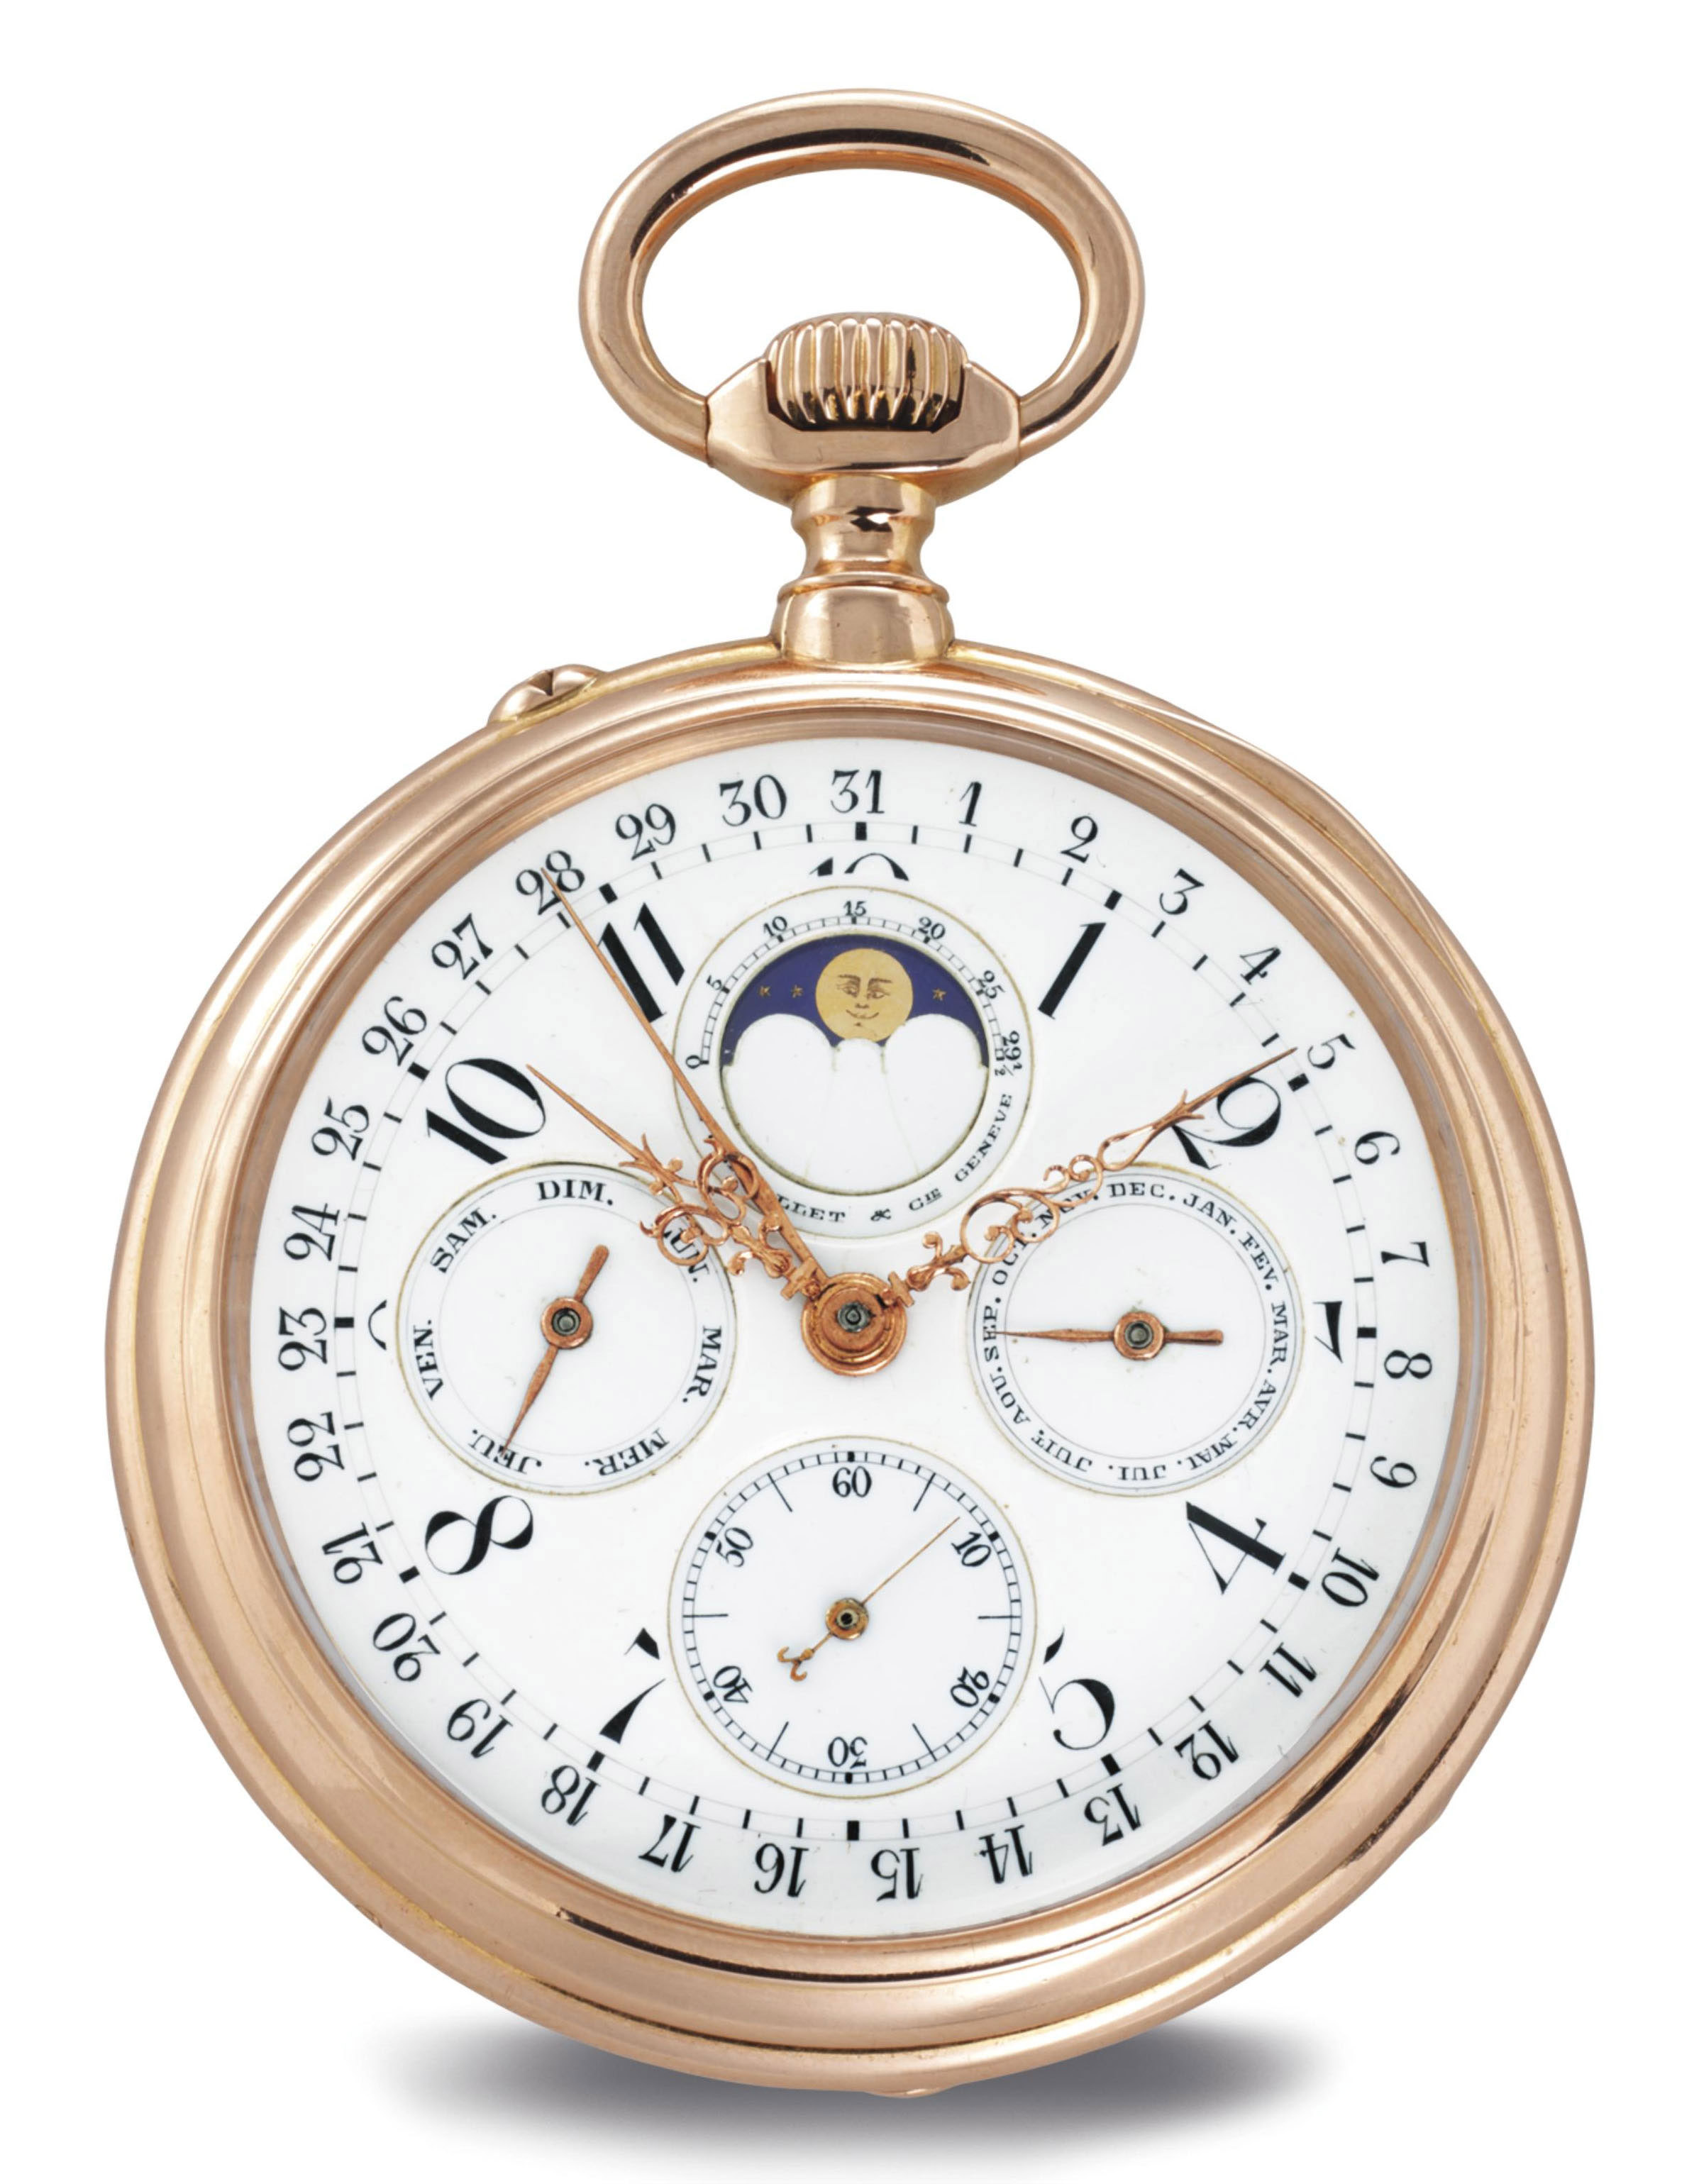 BADOLLET & CO. AN 18K PINK GOLD OPENFACE TRIPLE CALENDAR KEYLESS LEVER POCKET WATCH WITH MOON PHASES